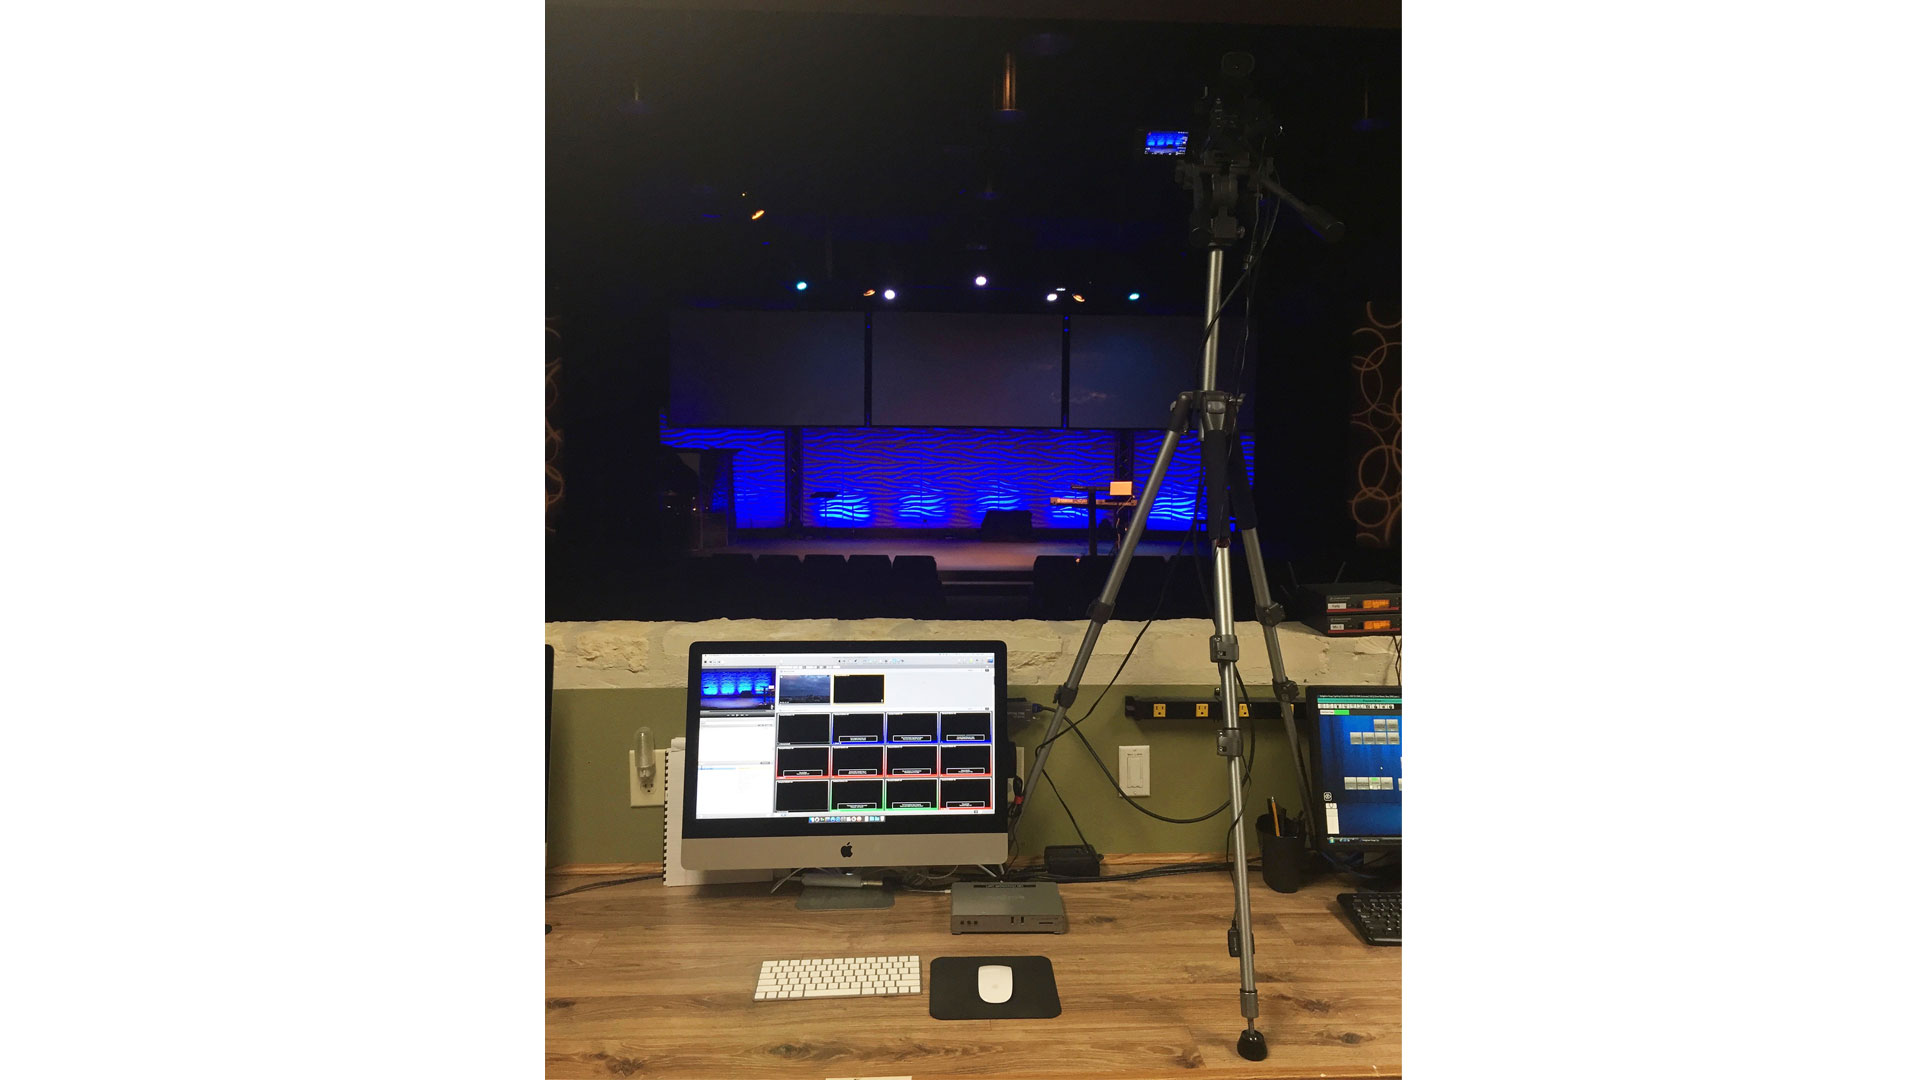 Video management system at Lifehouse Church with the Matrox Monarch HDX streaming and recording appliance connected to an iMac with presentation software.